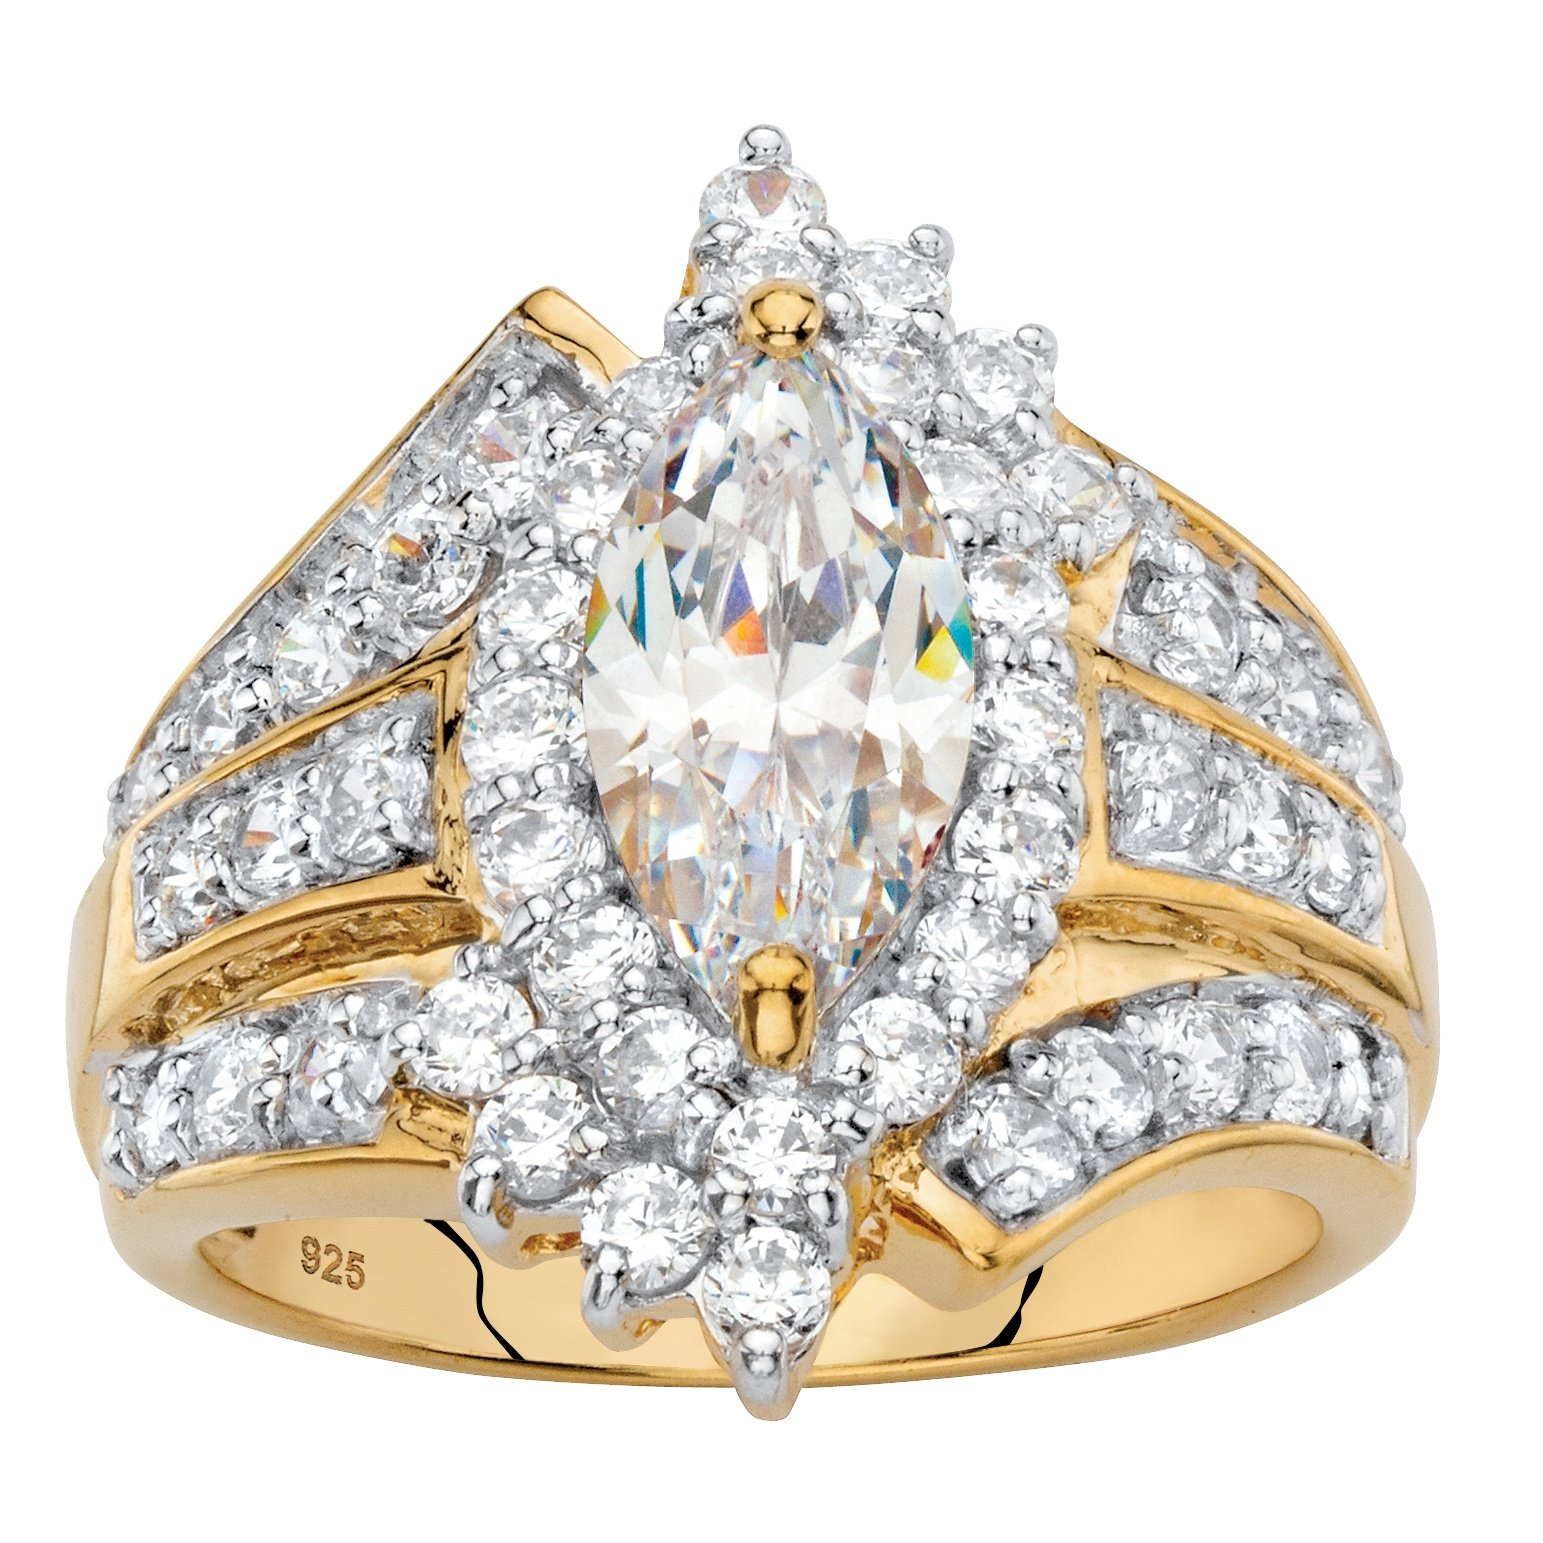 18k Gold over .925 Silver White Marquise Cubic Zirconia Triple Row Cocktail Ring Size 7